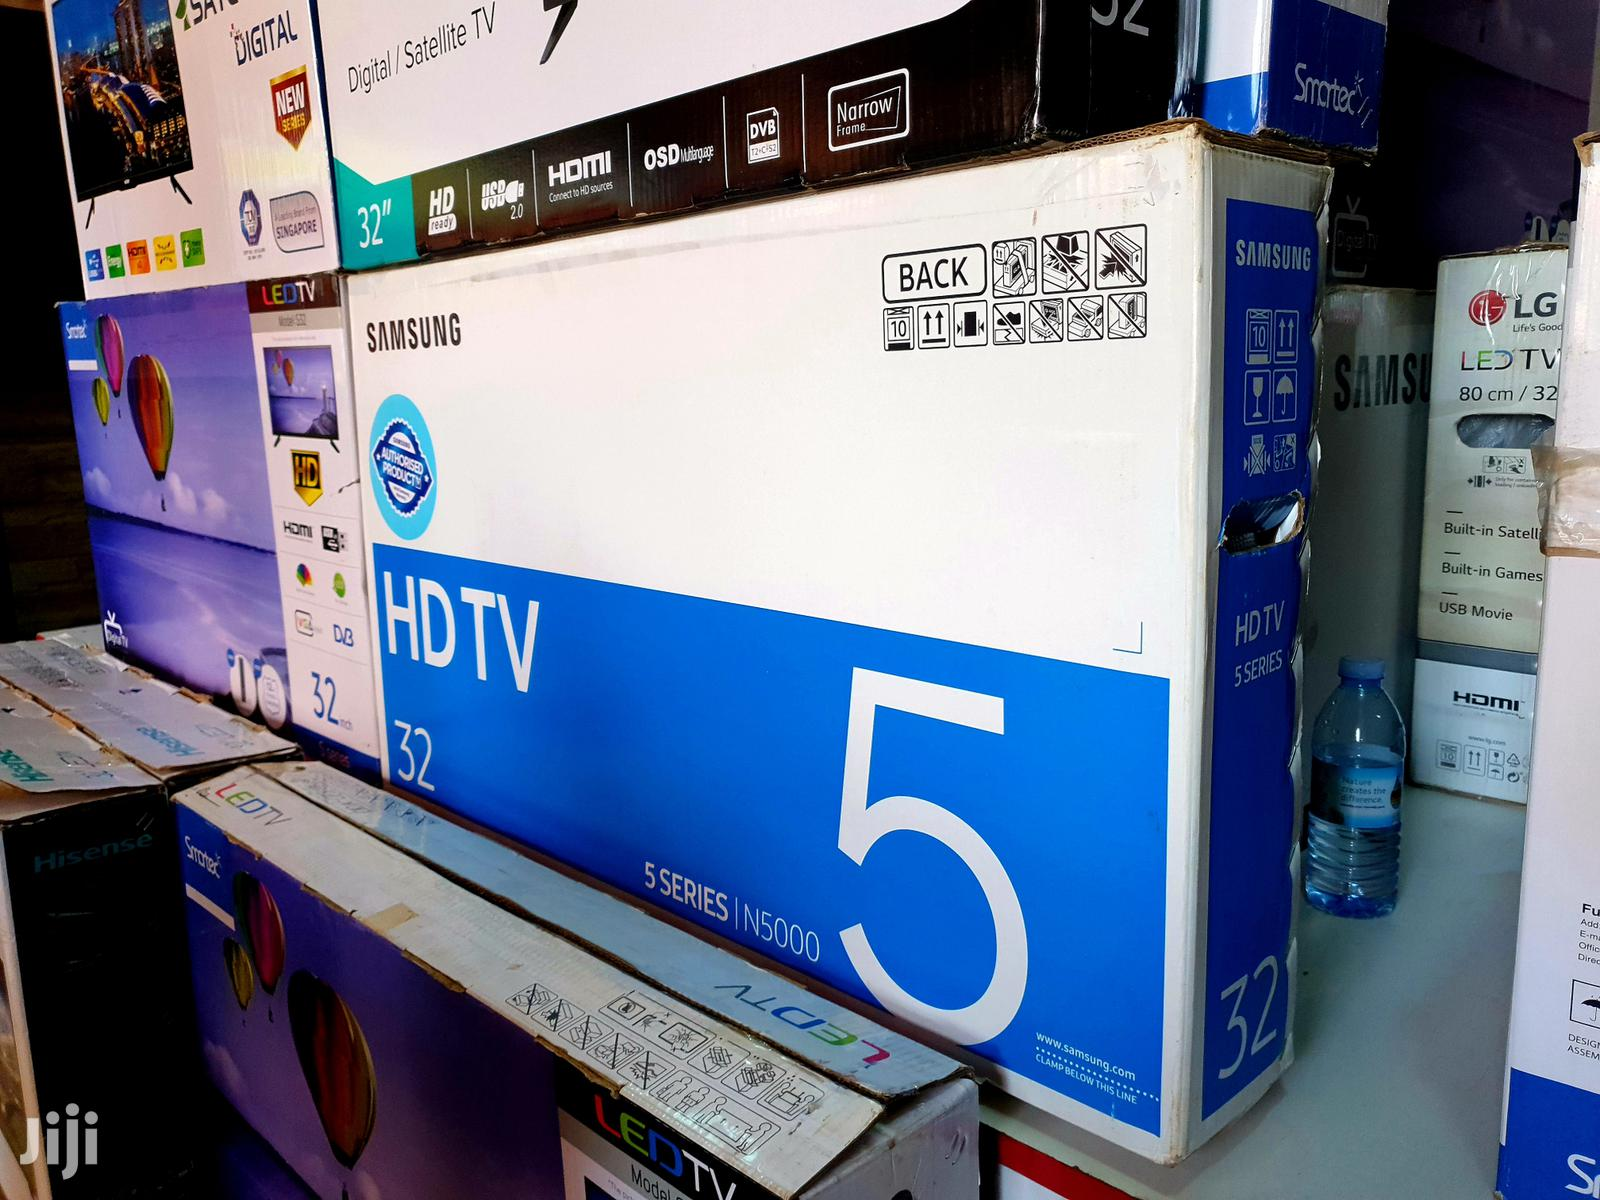 Brand New Samsung Digital Satellite Led Tv 32 Inches